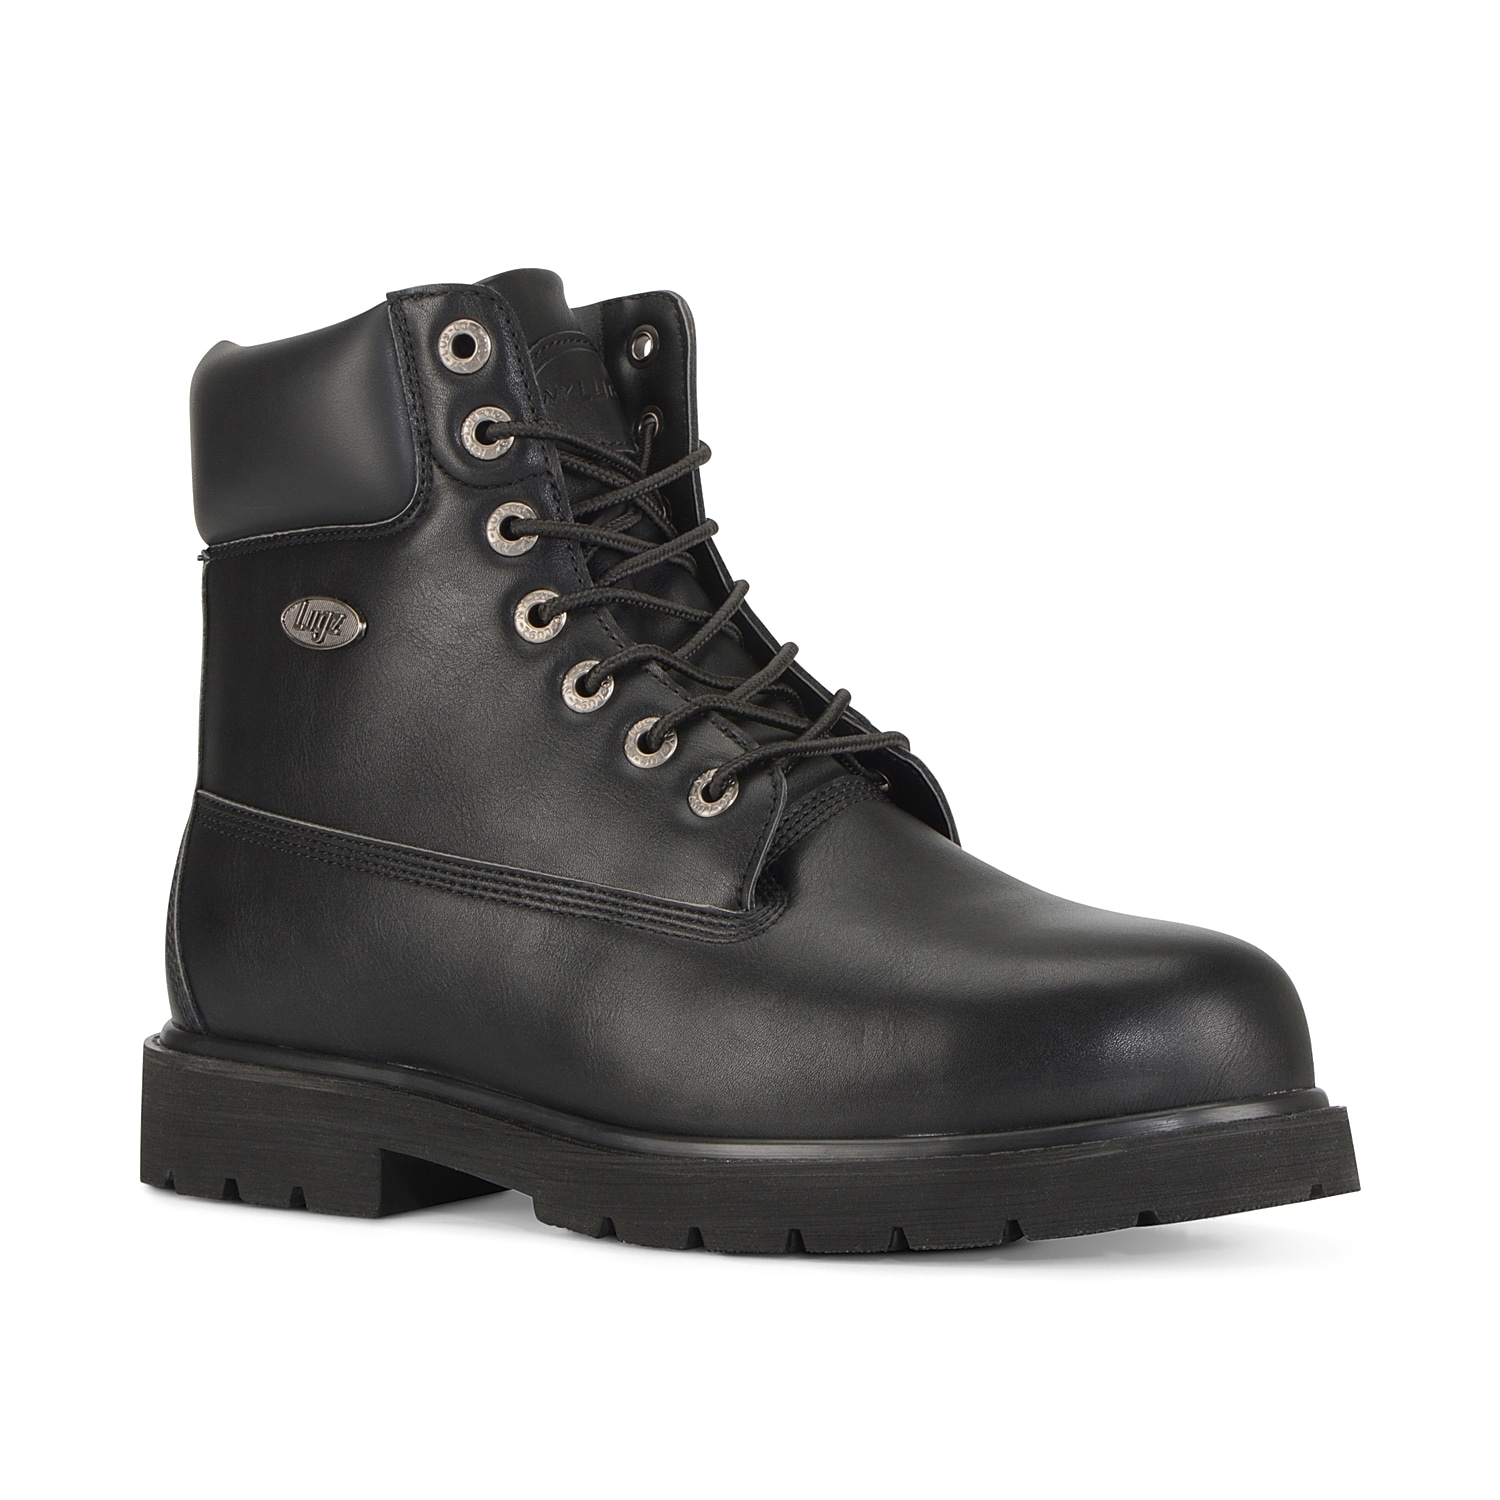 The Drifter ankle boot from Lugz is a fresh update on a classic design. A steel toe, water resistant upper, flexastride memory foam footbed, and a slip resistant sole will keep you safe in style.